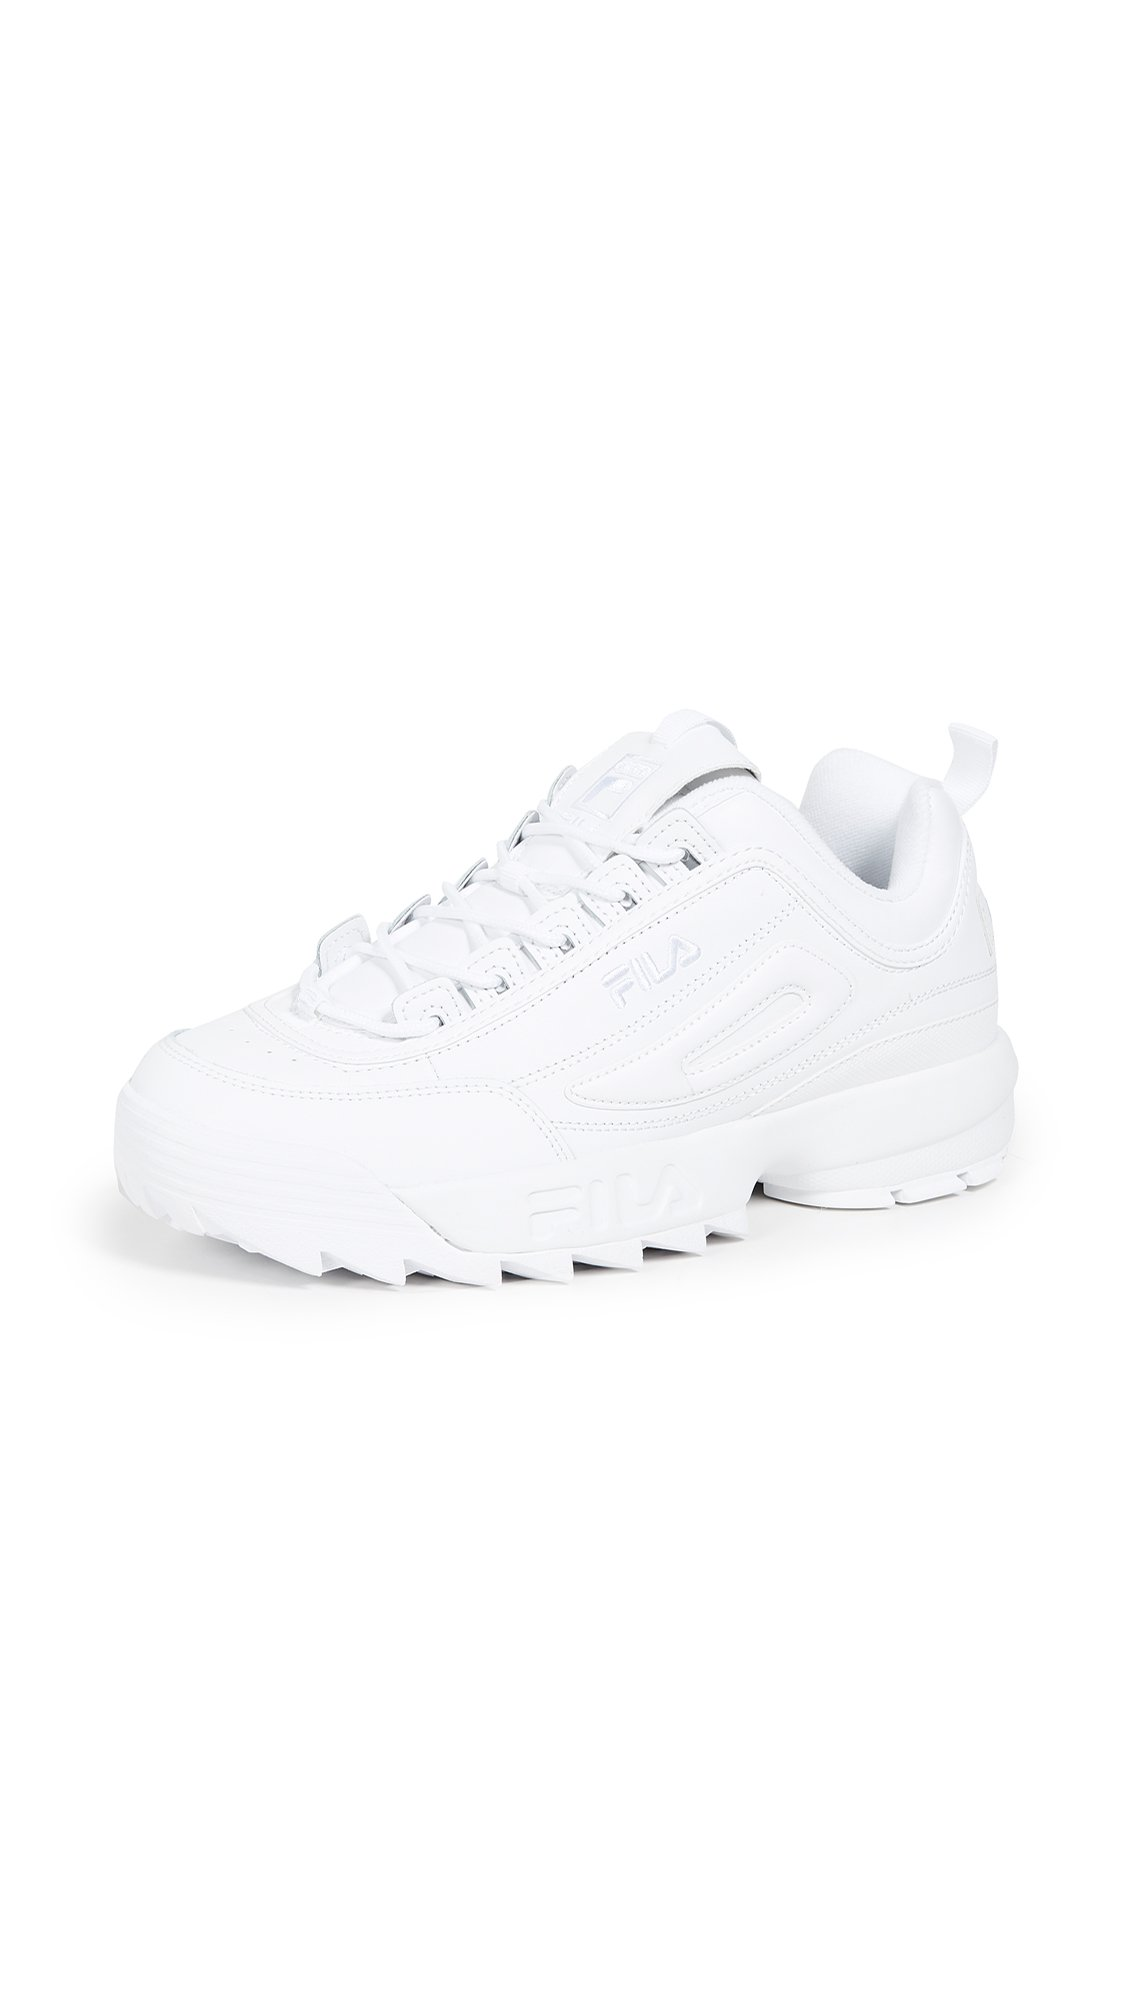 a42280f71861 Galleon - Fila Men s Disruptor II Premium Trainers